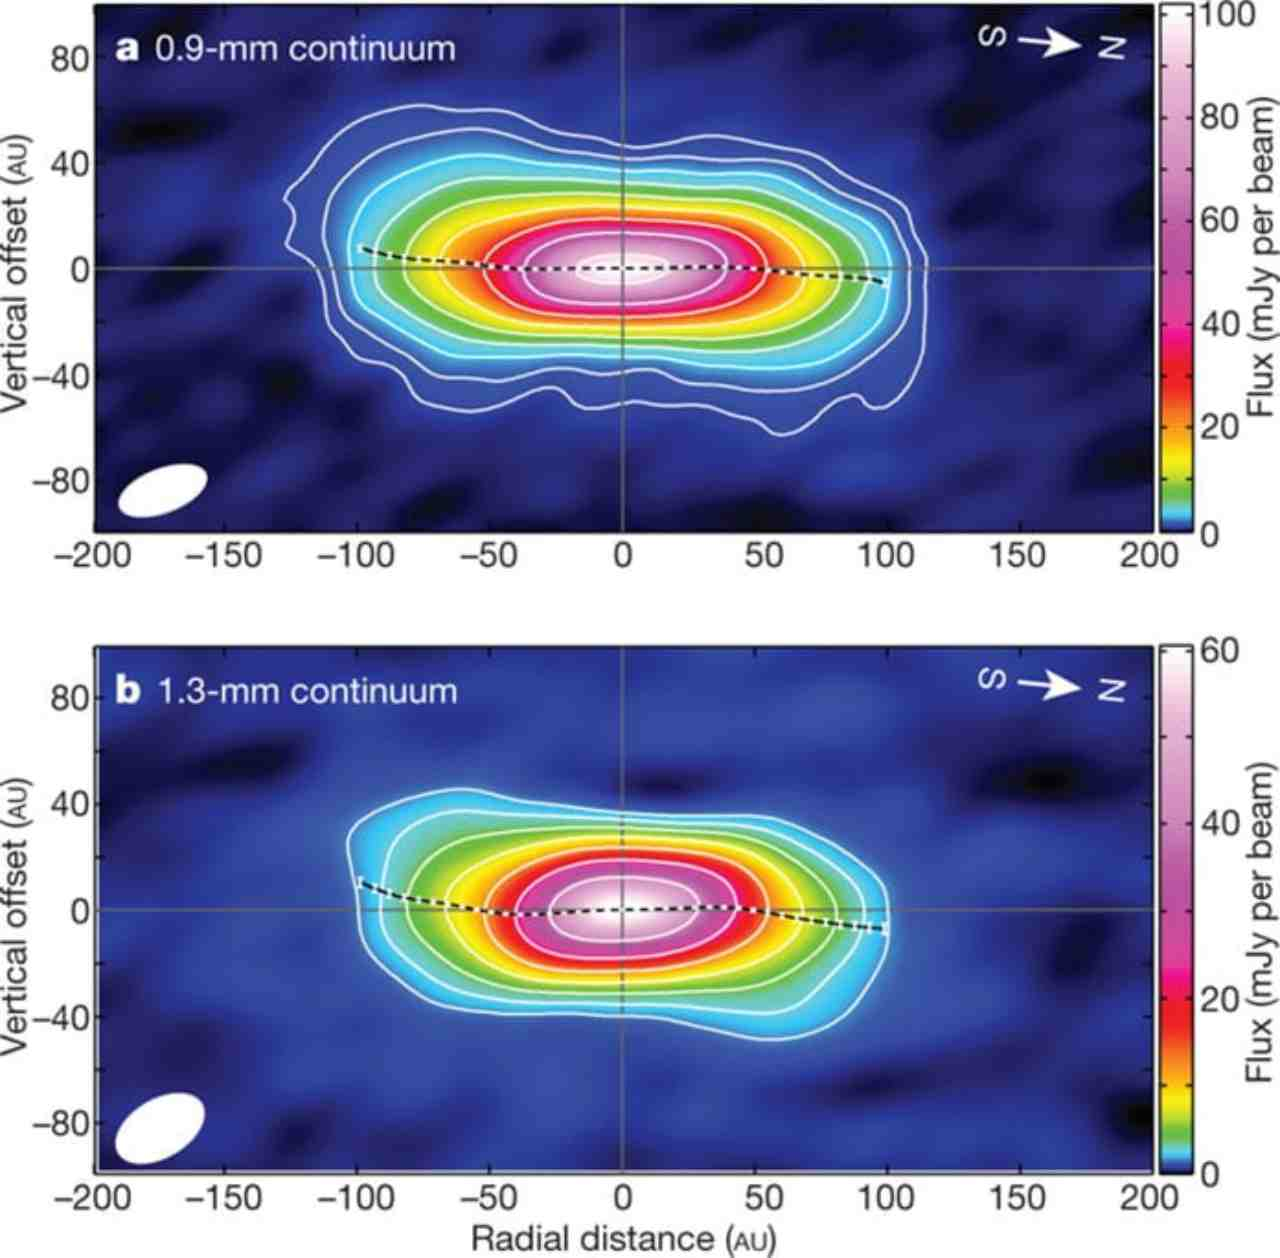 The infant-disk system around IRAS 04368+2557 as seen by ALMA, also called a dust-continuum emission. Image courtesy: Nature/Sakai et al.